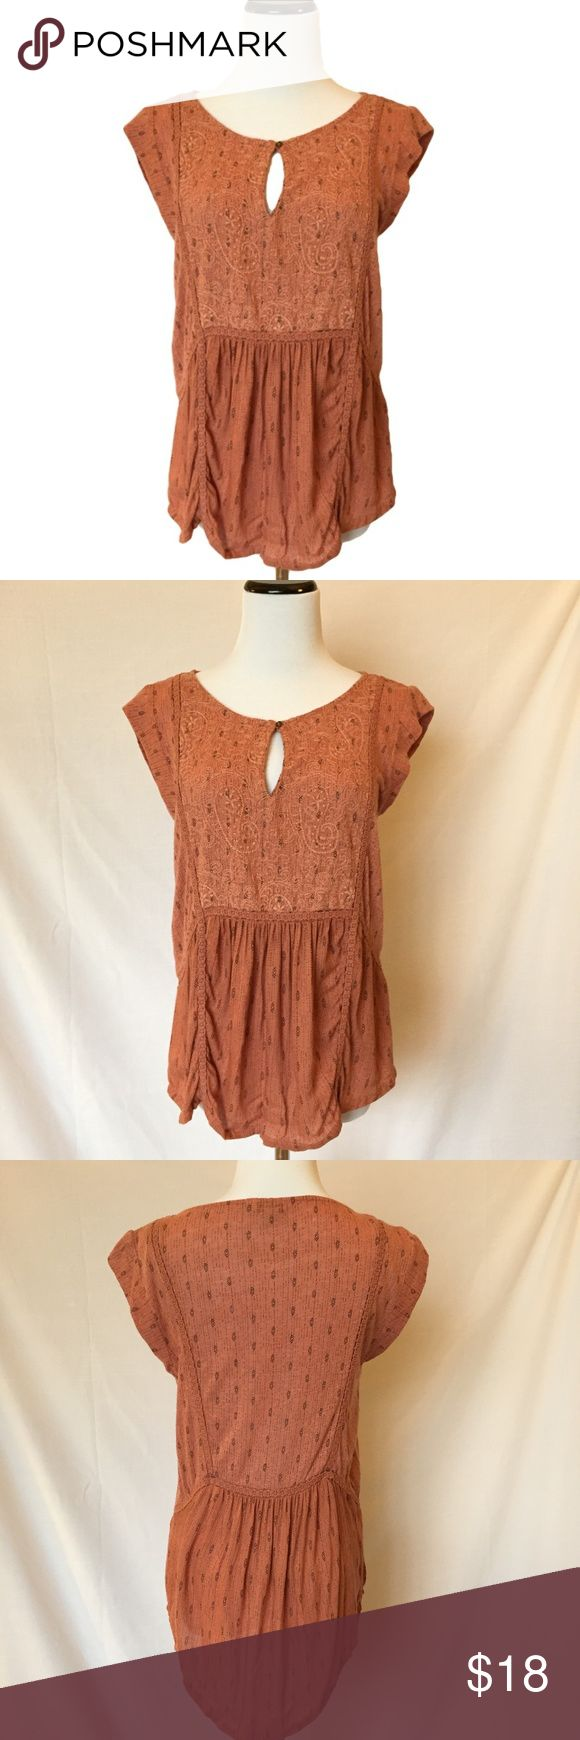 "Lucky Brand S keyhole cap sleeve linen/rayon This Lucky Brand cap sleeve key holed shirt is so soft.  The material is above the waist is more of a distressed worn out look, the bottom is same material, just not as distressed looking.  Embellished throughout with cotton crochet-like stitching. Back fall longer than front. The color is a rusty orangish/pink with black details. Bust- 17"" Length front- 24"" Length back- 27"" Lucky Brand Tops"